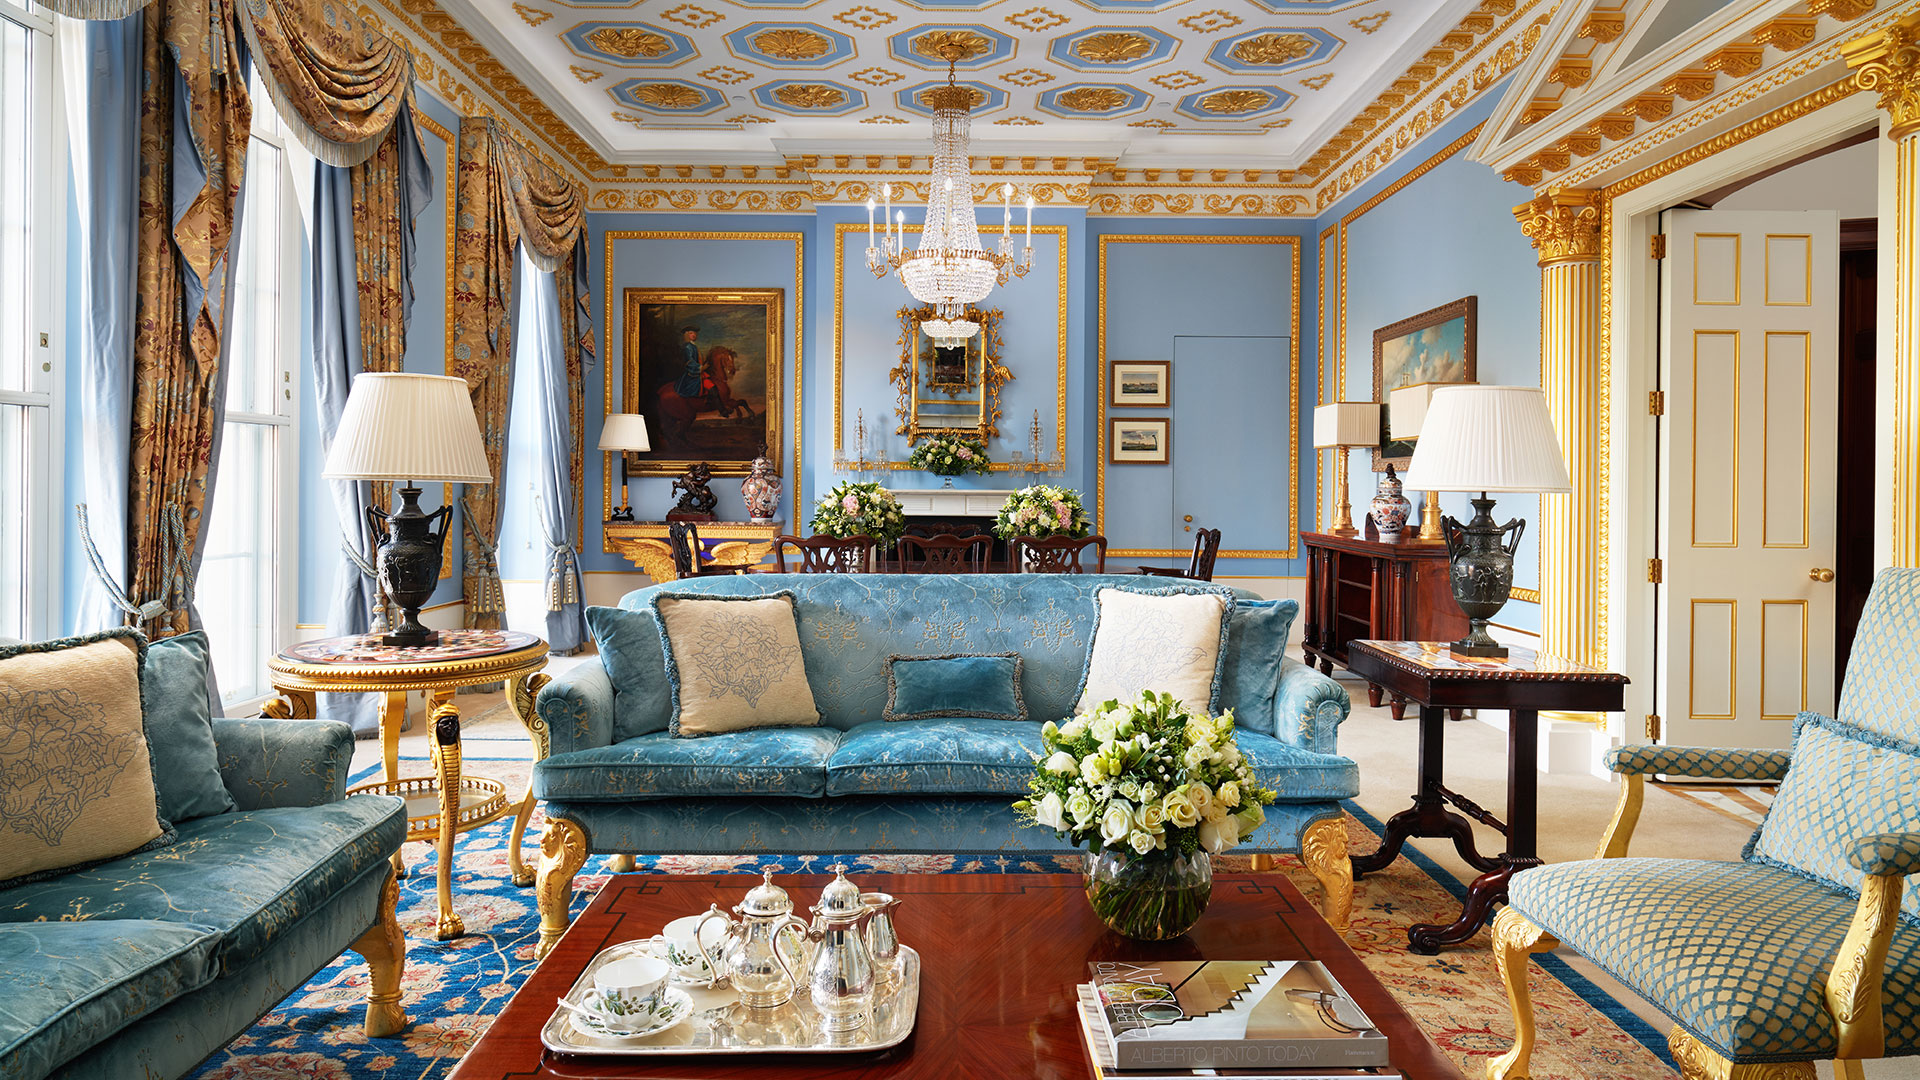 The Royal Suite 5 Star Hotel The Lanesborough